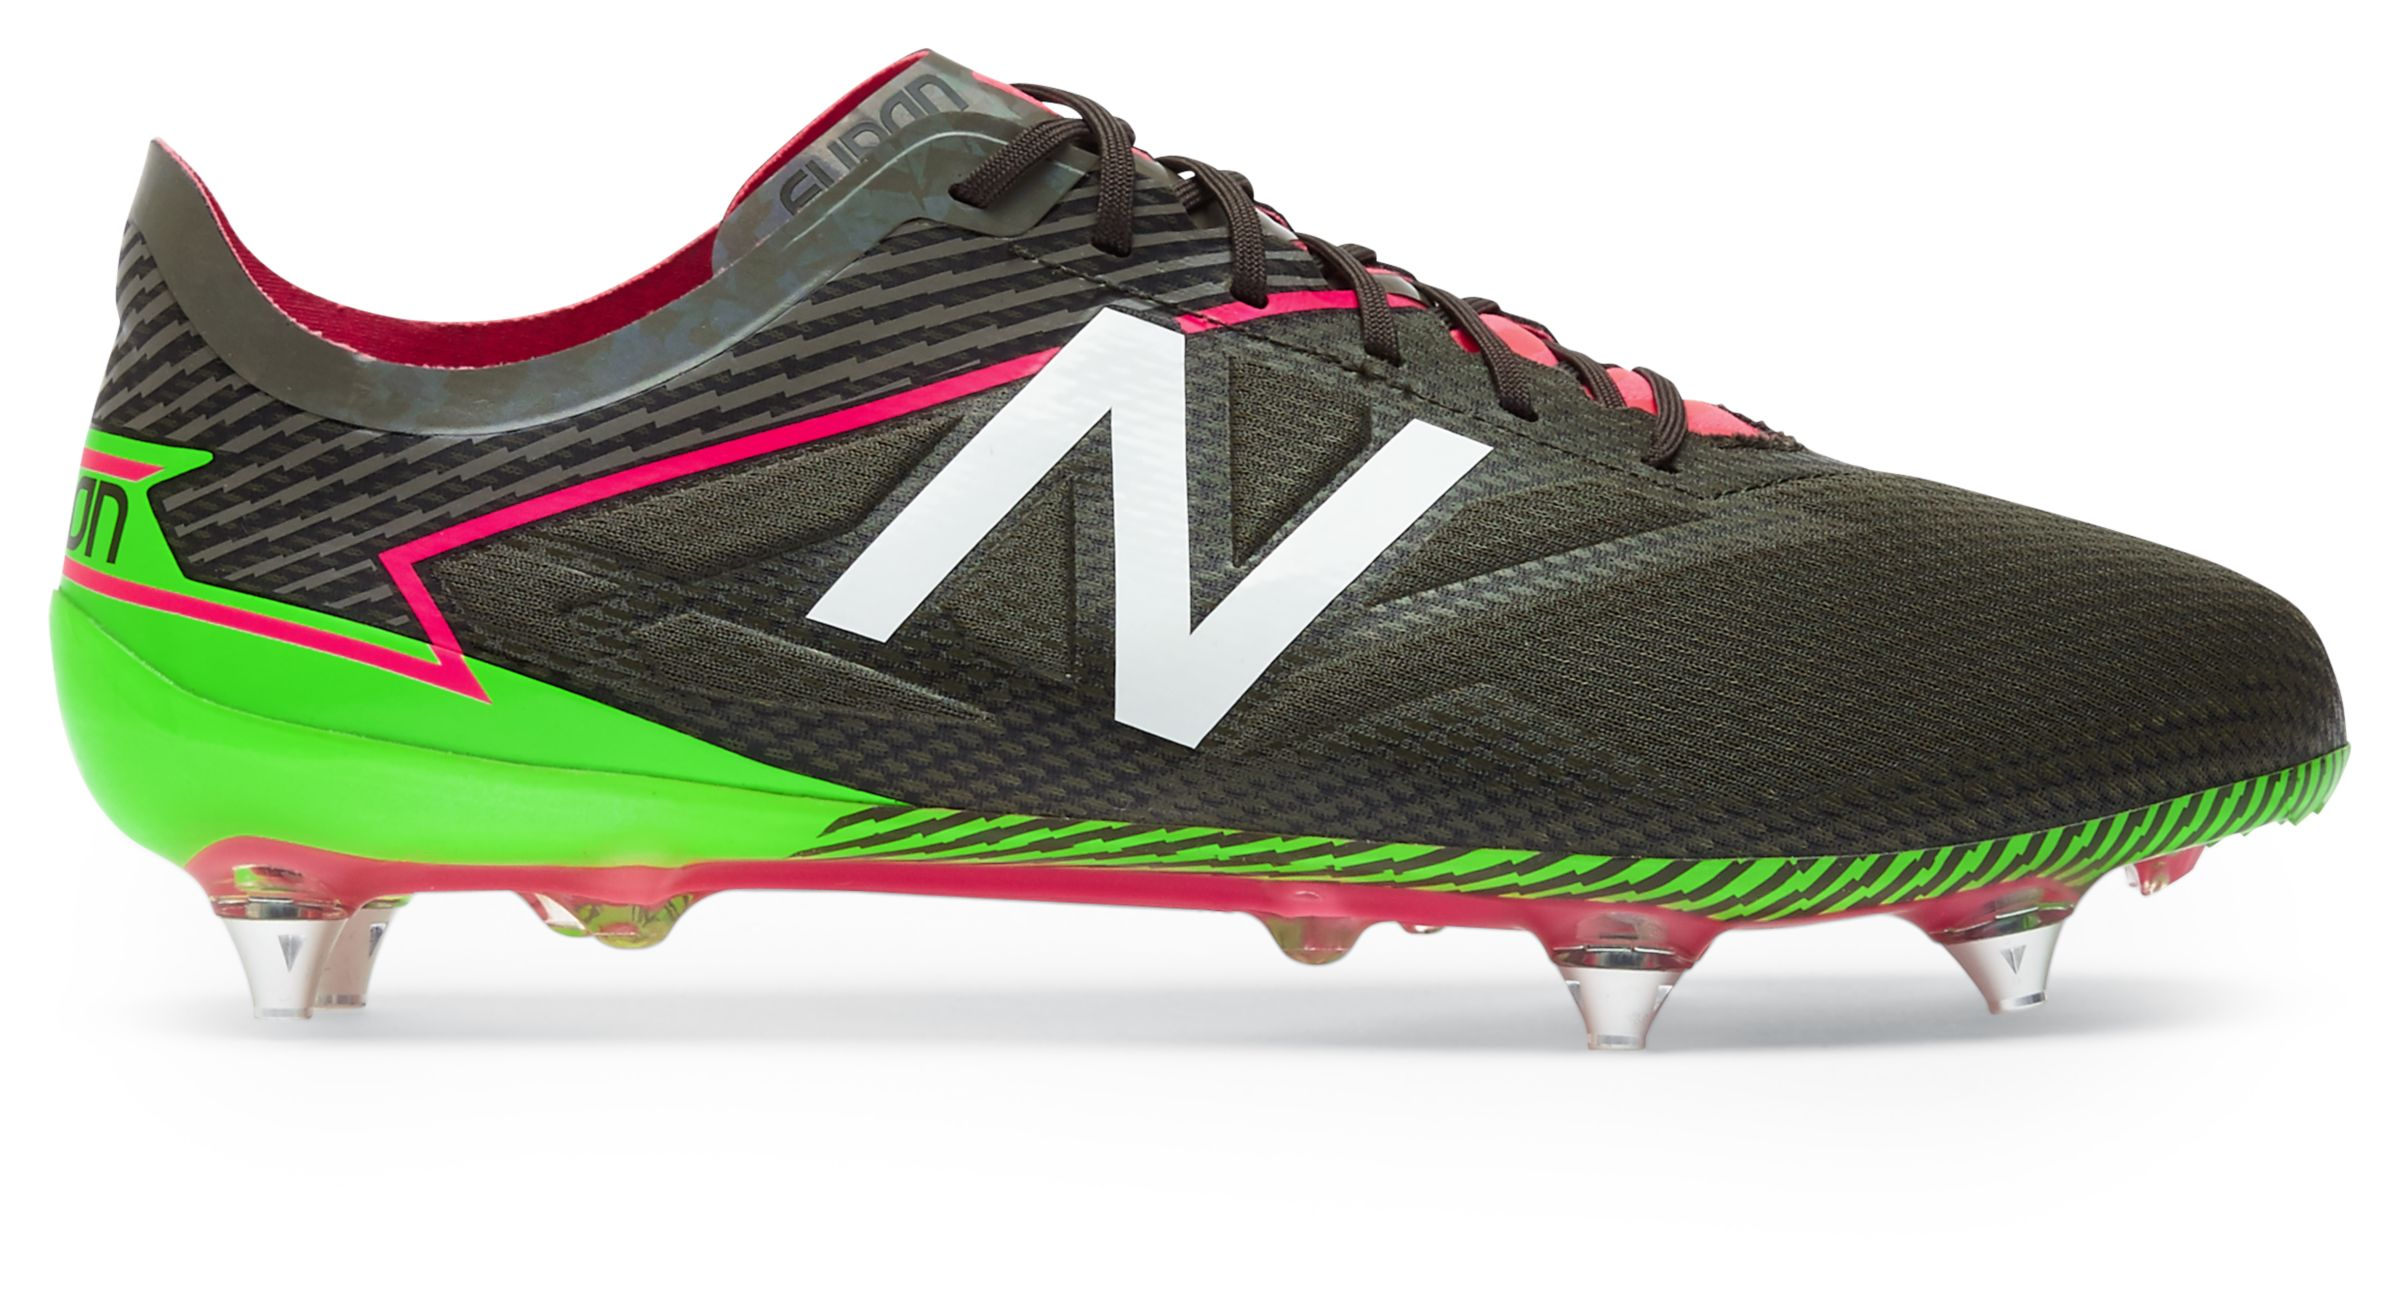 NB Furon 3.0 Pro SG, Military Dark Triumph with Alpha Pink & Energy Lime